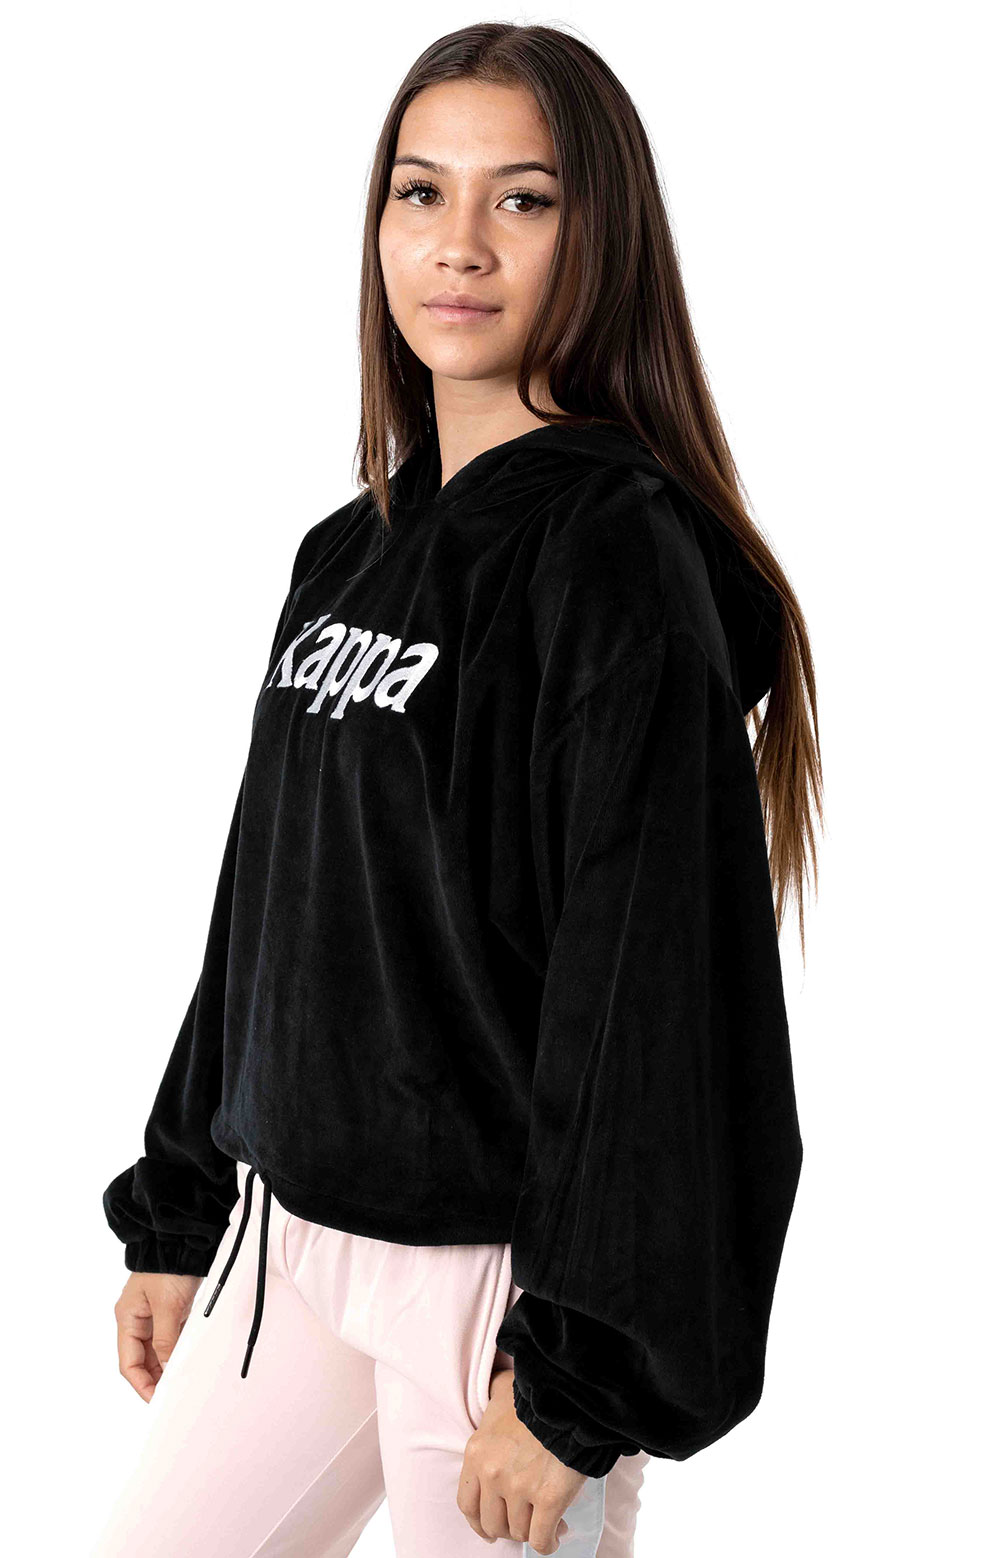 Authentic JPN Belua Velour Pullover Hoodie - Black/White 2